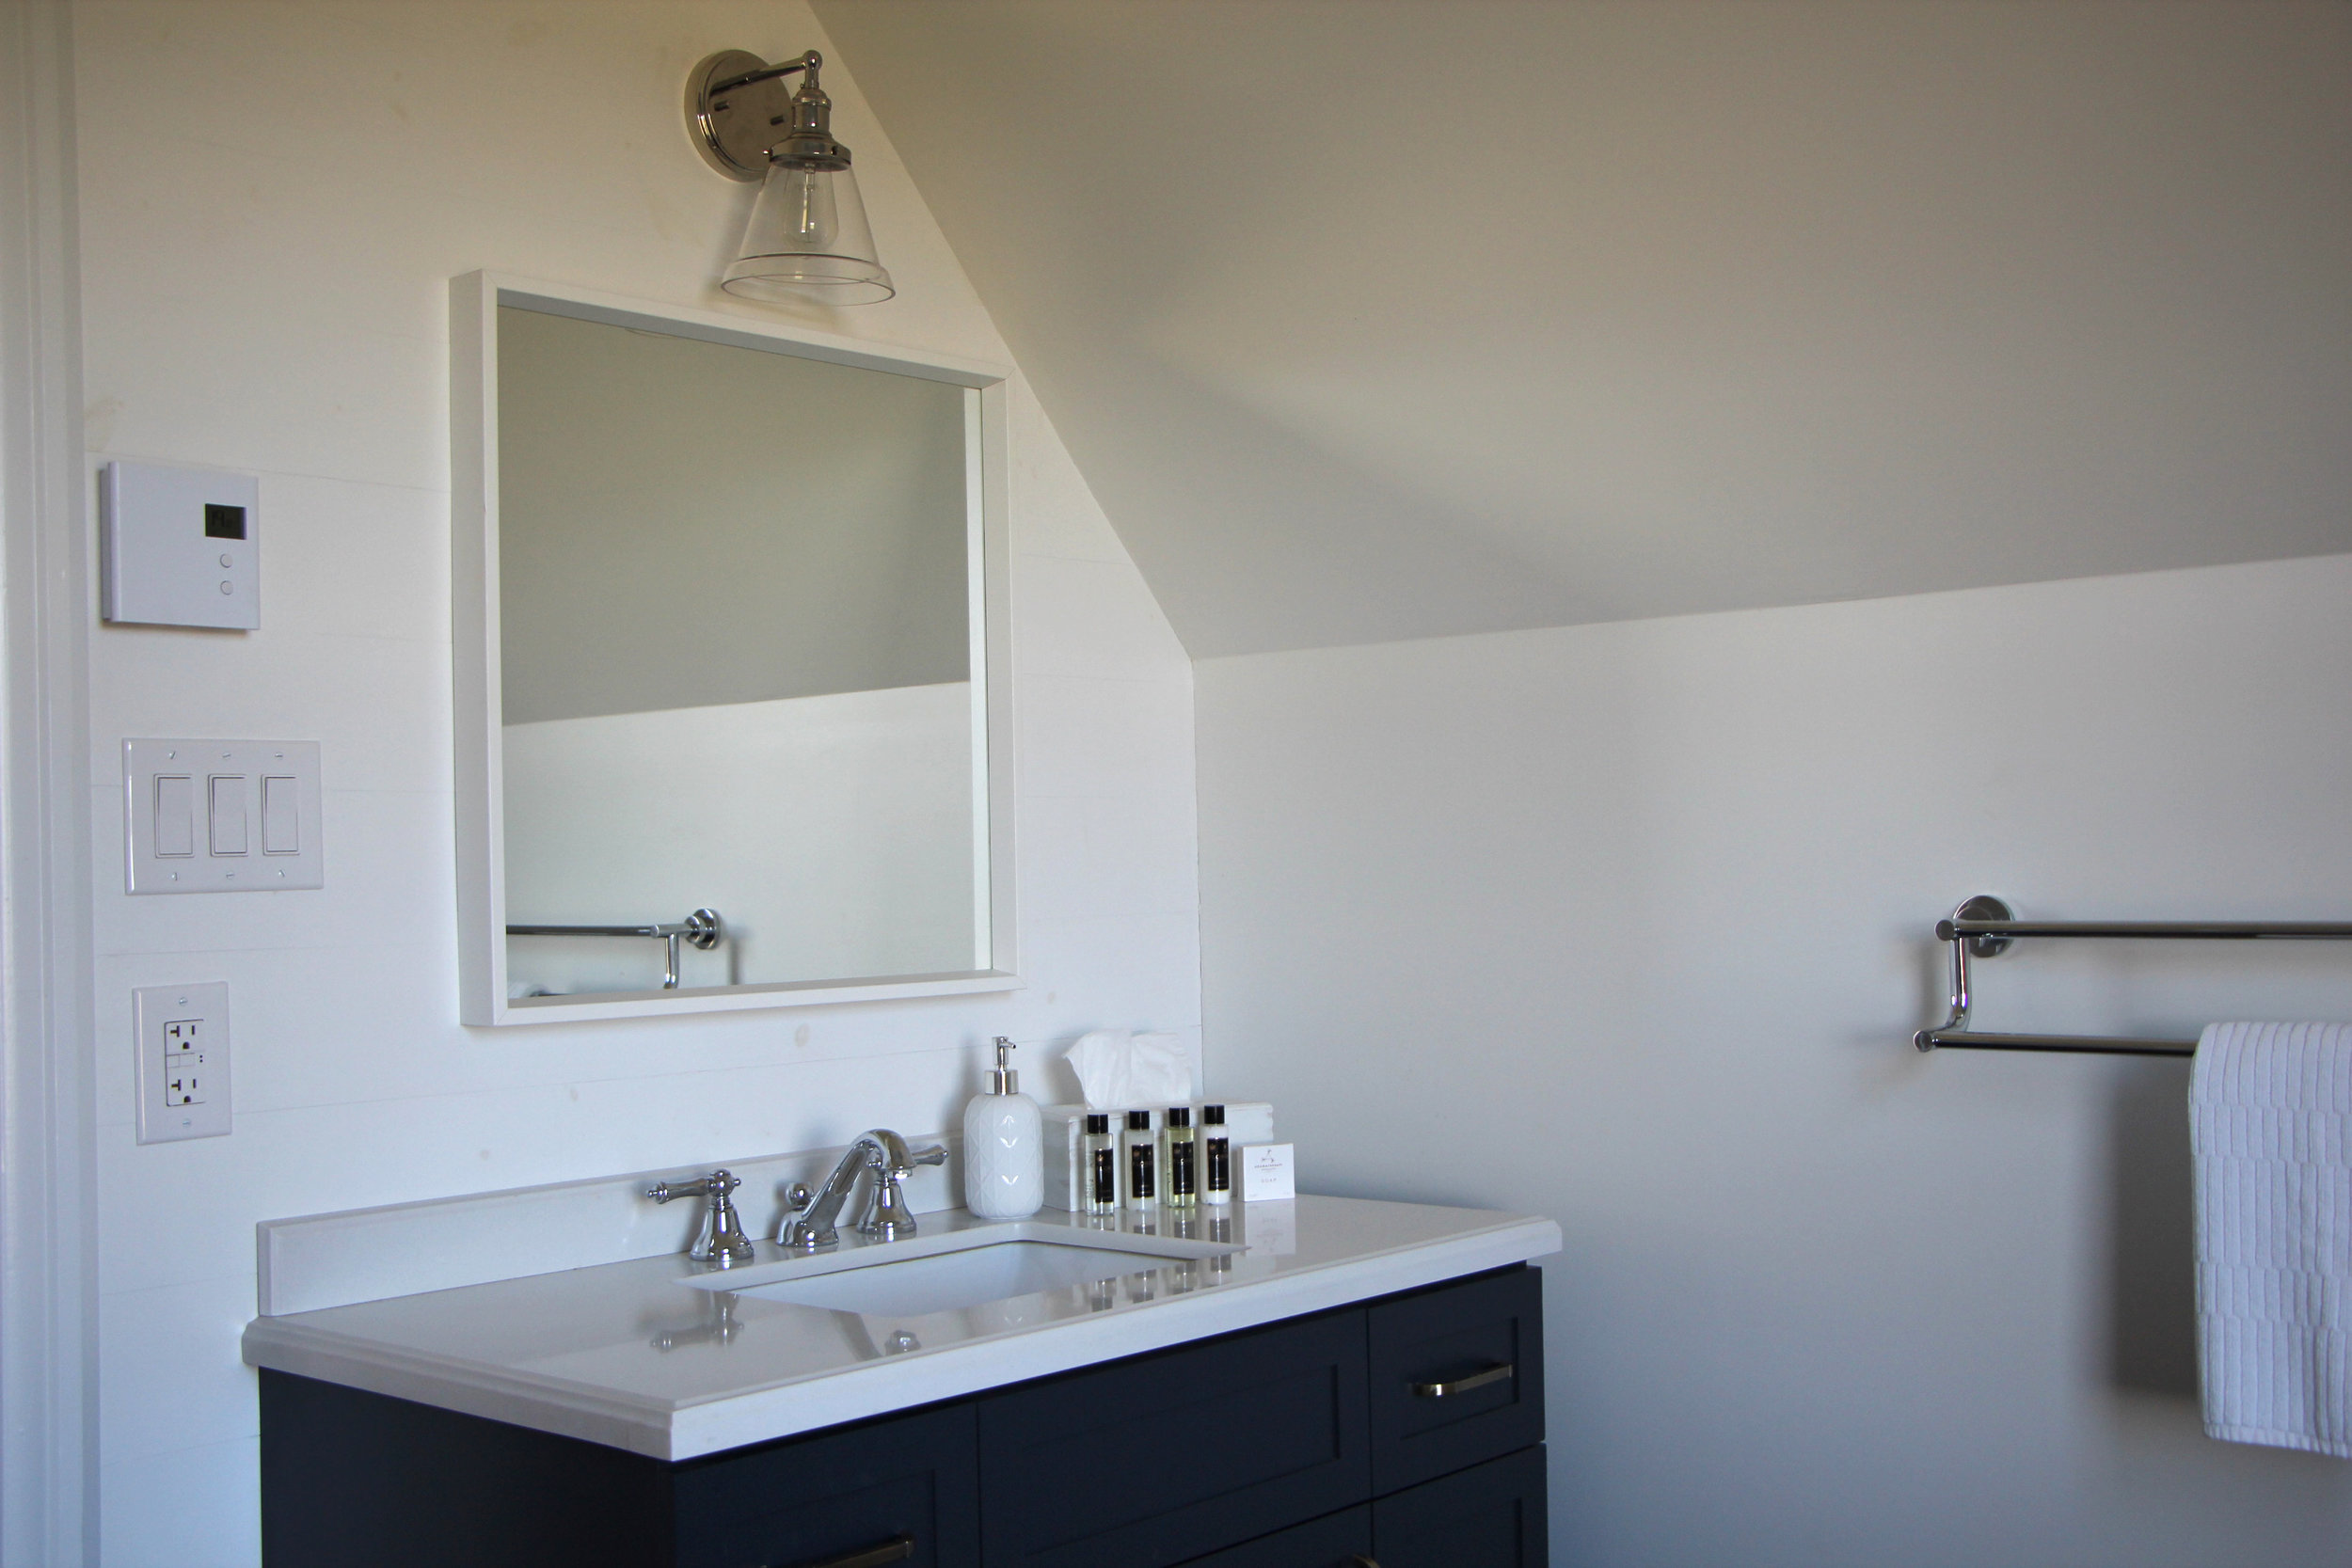 A modern makeover for the bathroom